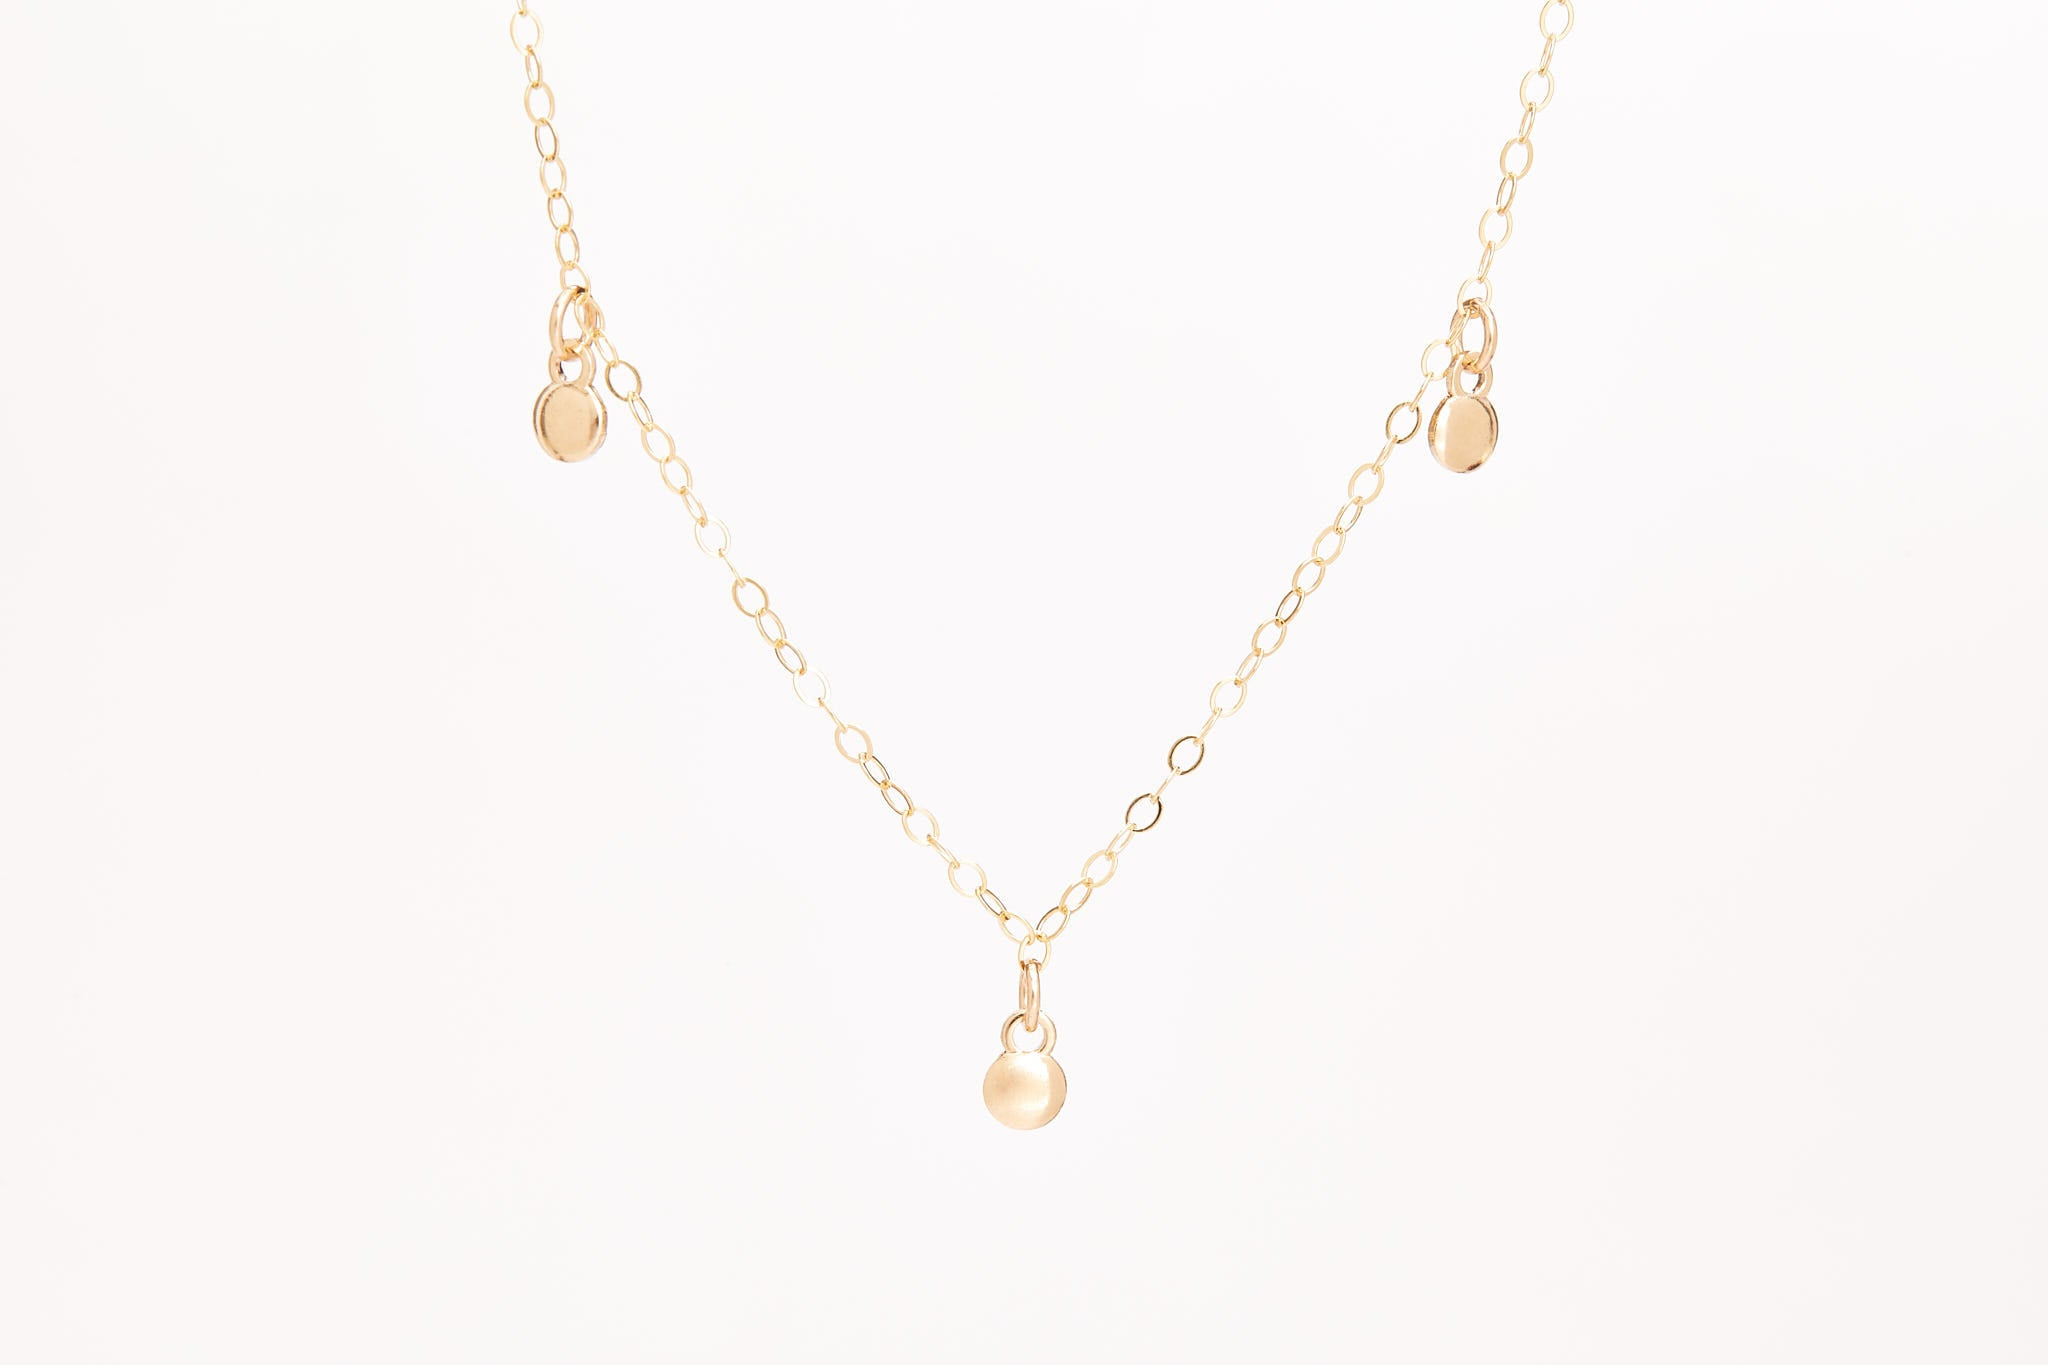 Tiny Coins Necklace Silver/Gold